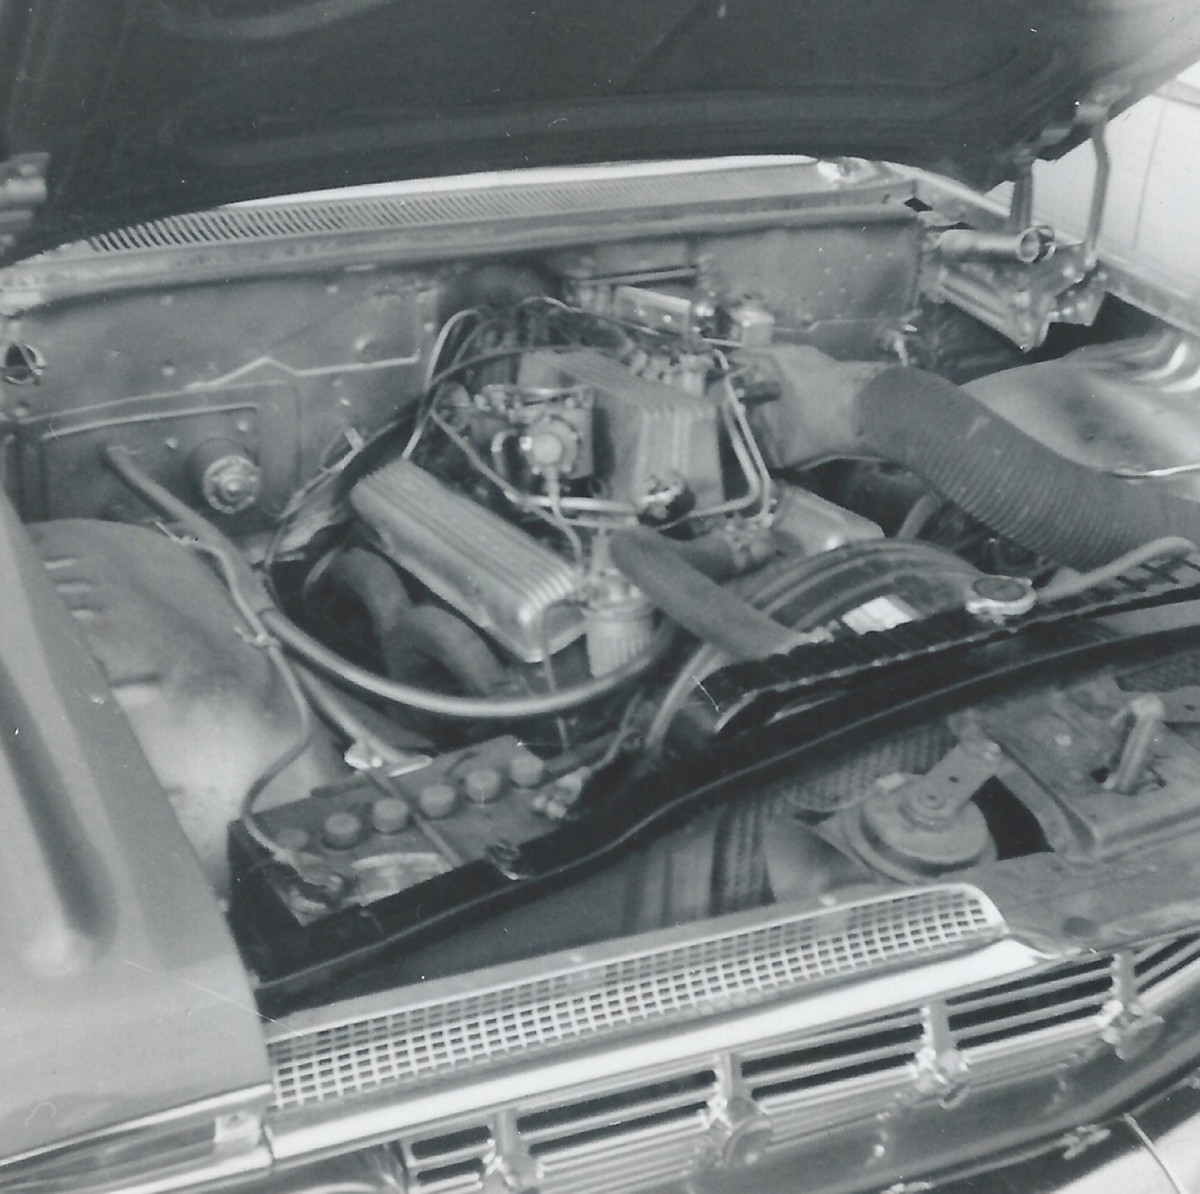 The engine compartment of Rosenbloom's 1959 Biscayne. Note the air intake tube to the fuel injection unit required on passenger car 1959 Chevrolets so equipped.